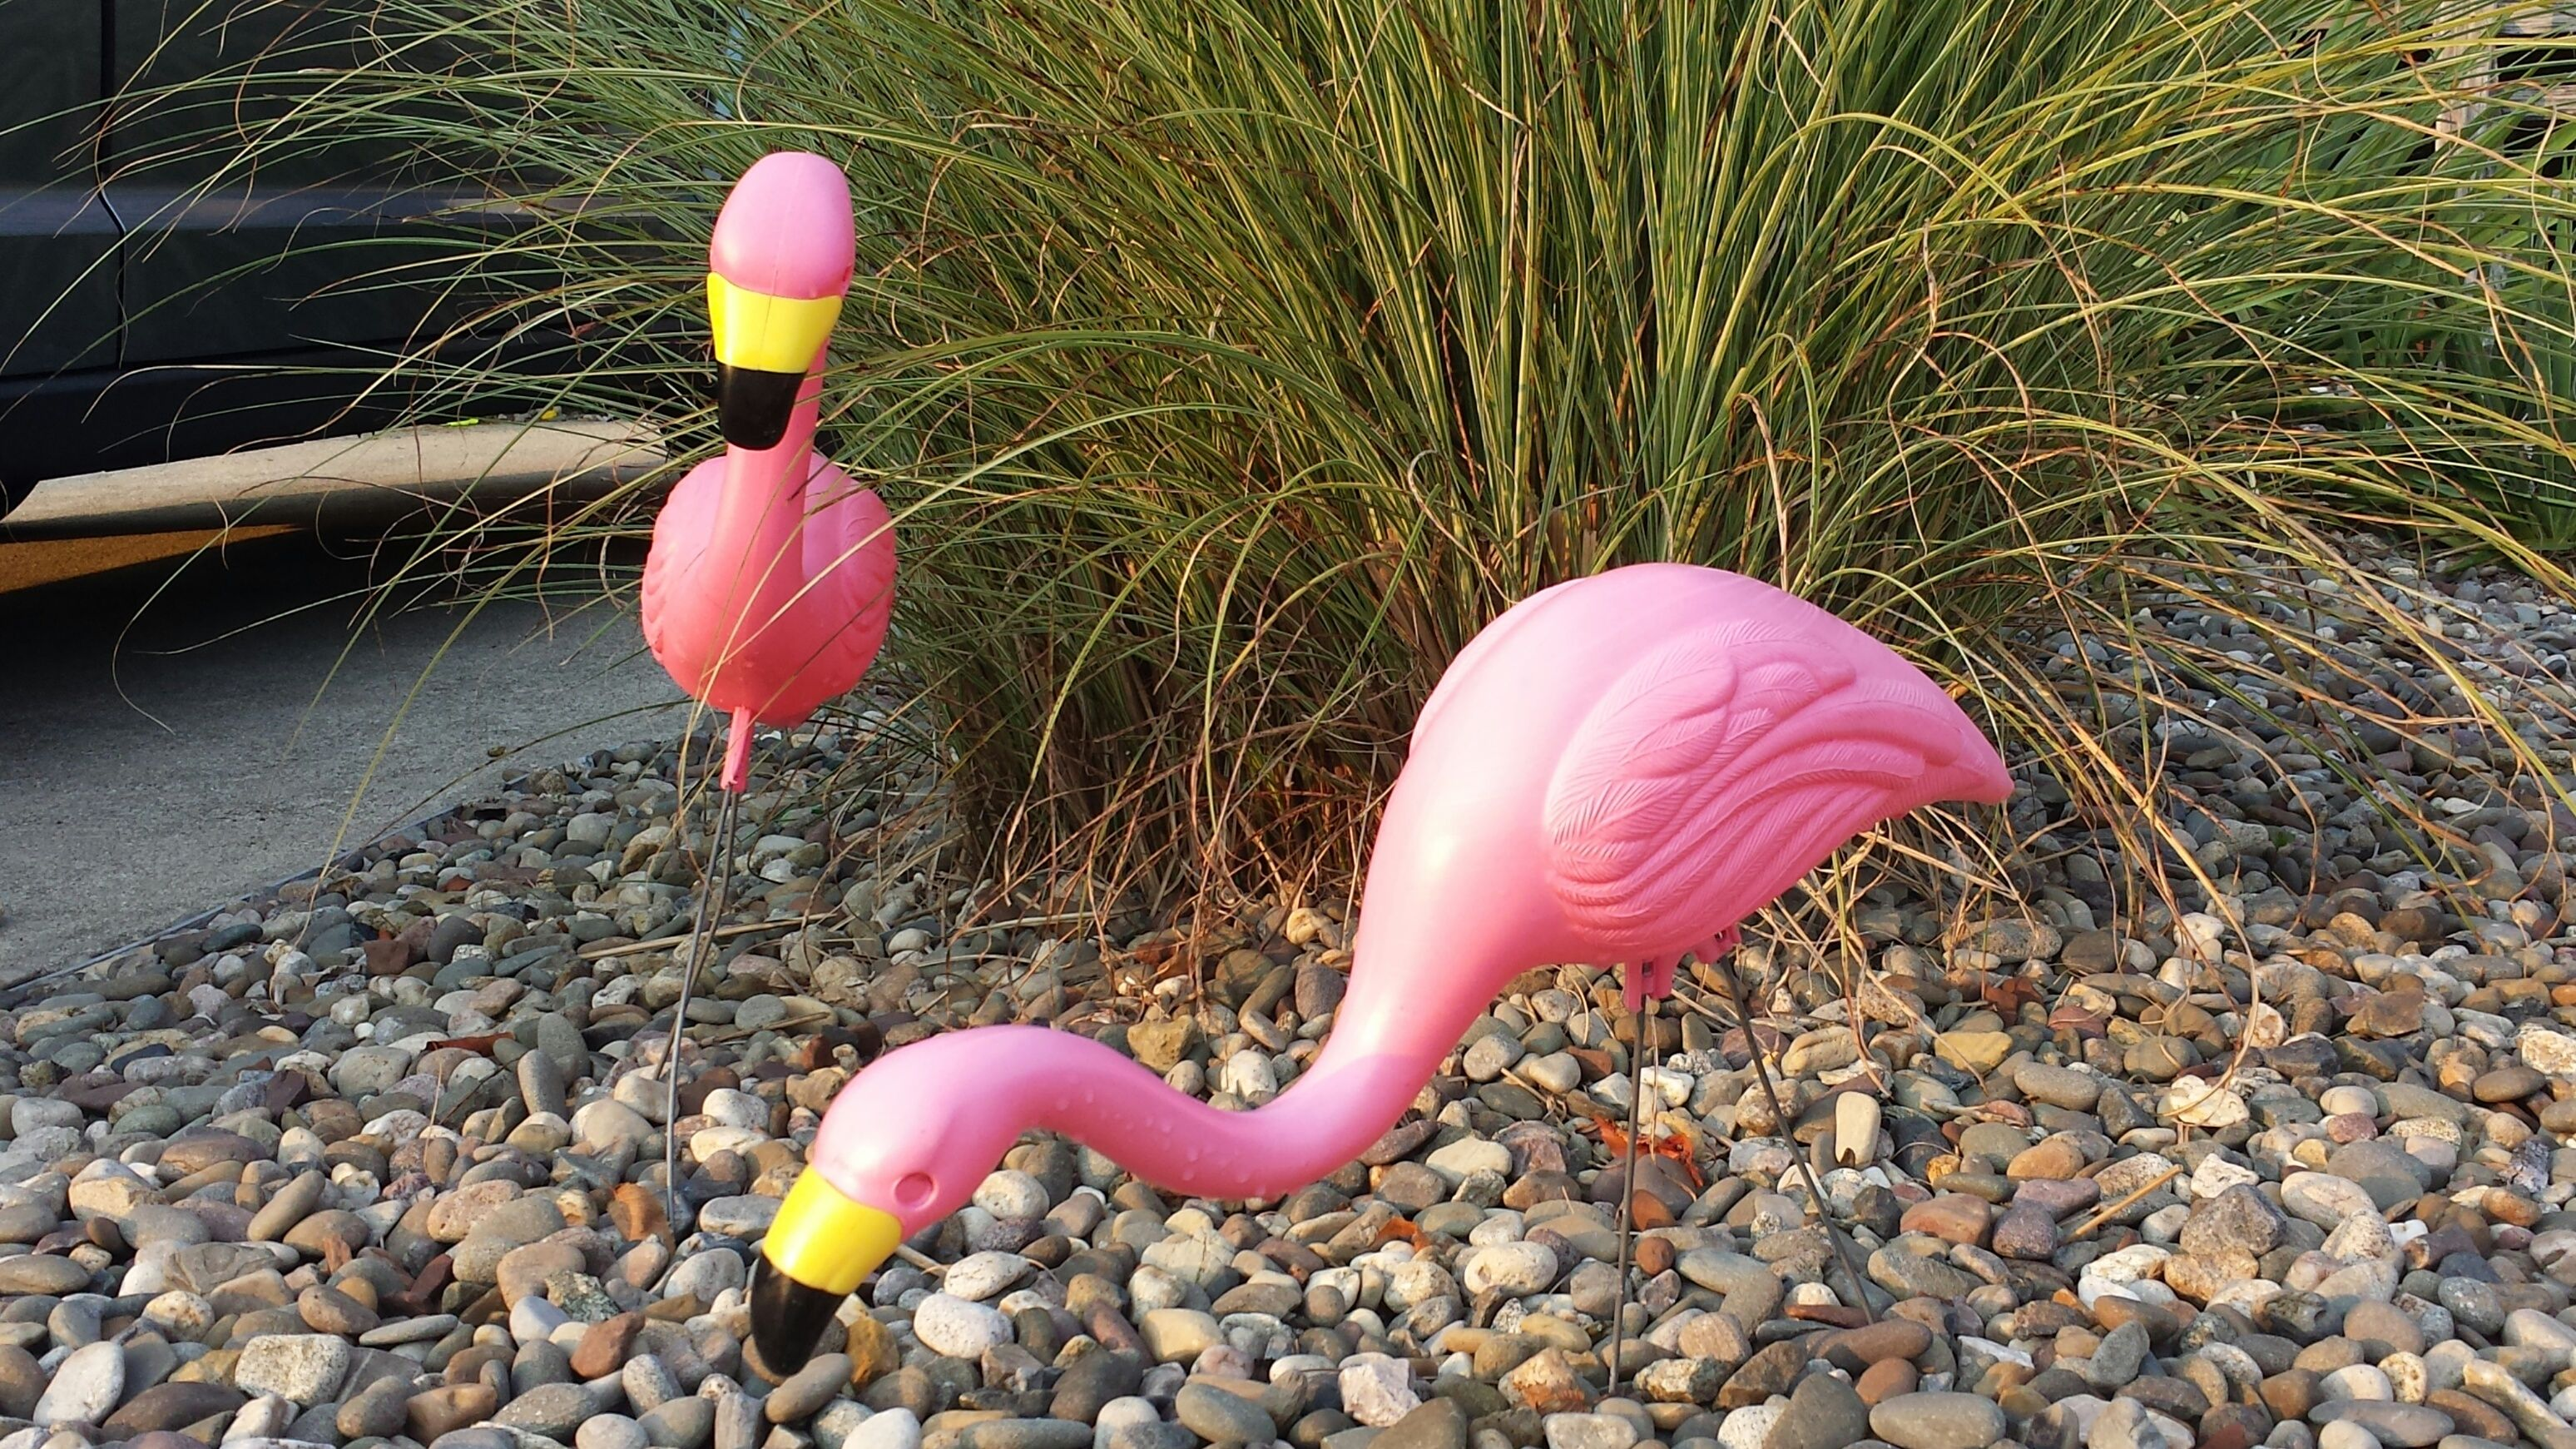 pink+flamingo+lawn+ornaments | pink flamingo lawn ornaments